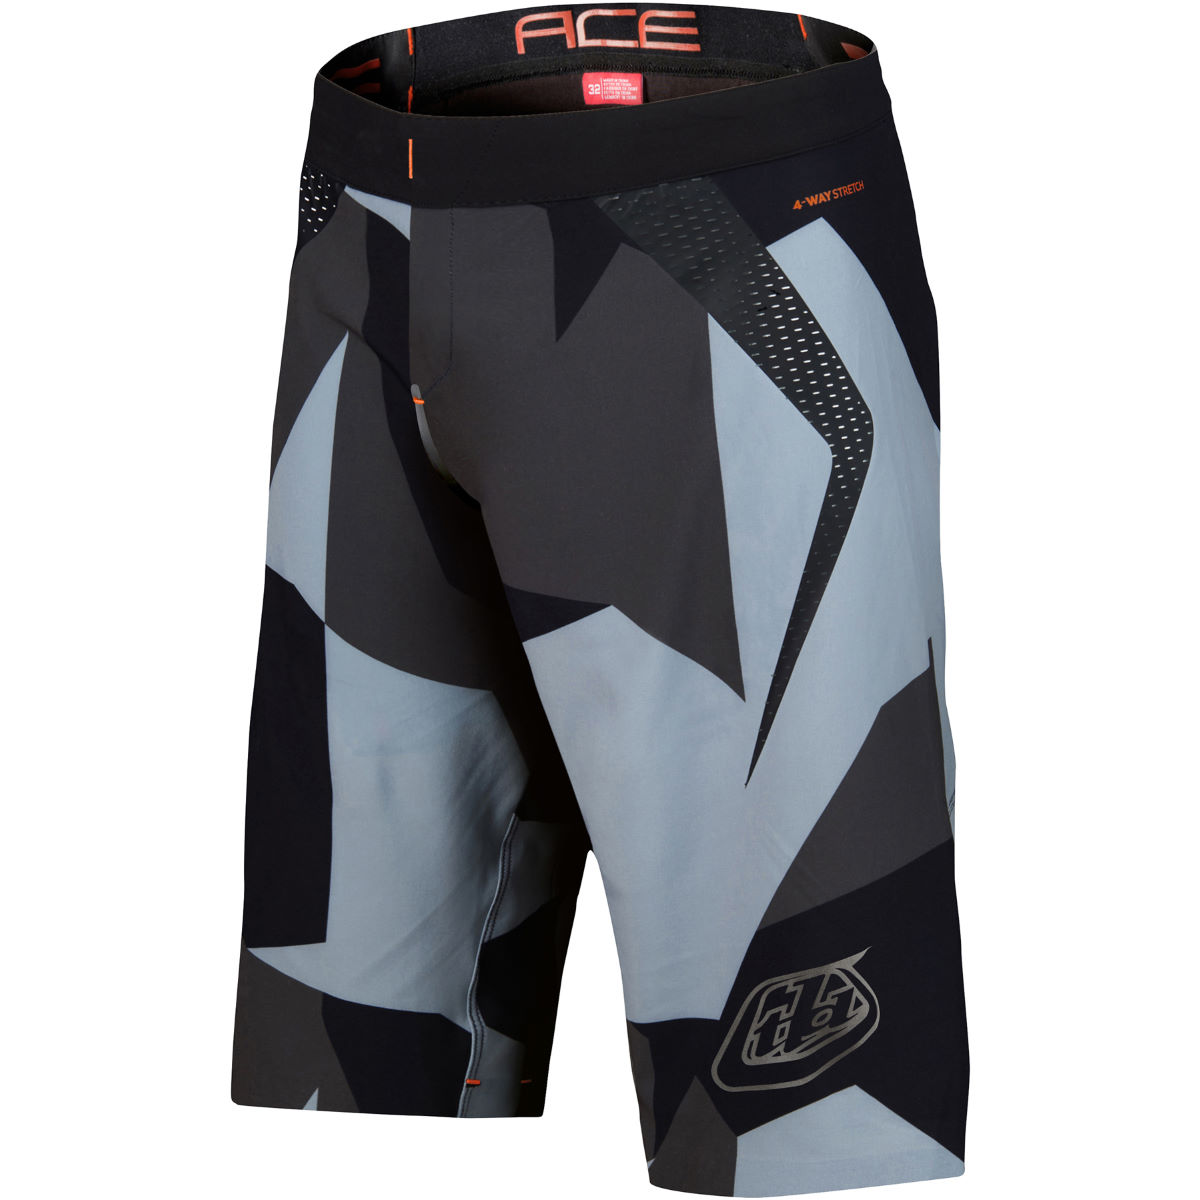 Bermudas Troy Lee Designs Ace 2.0 Chop - Bermudas